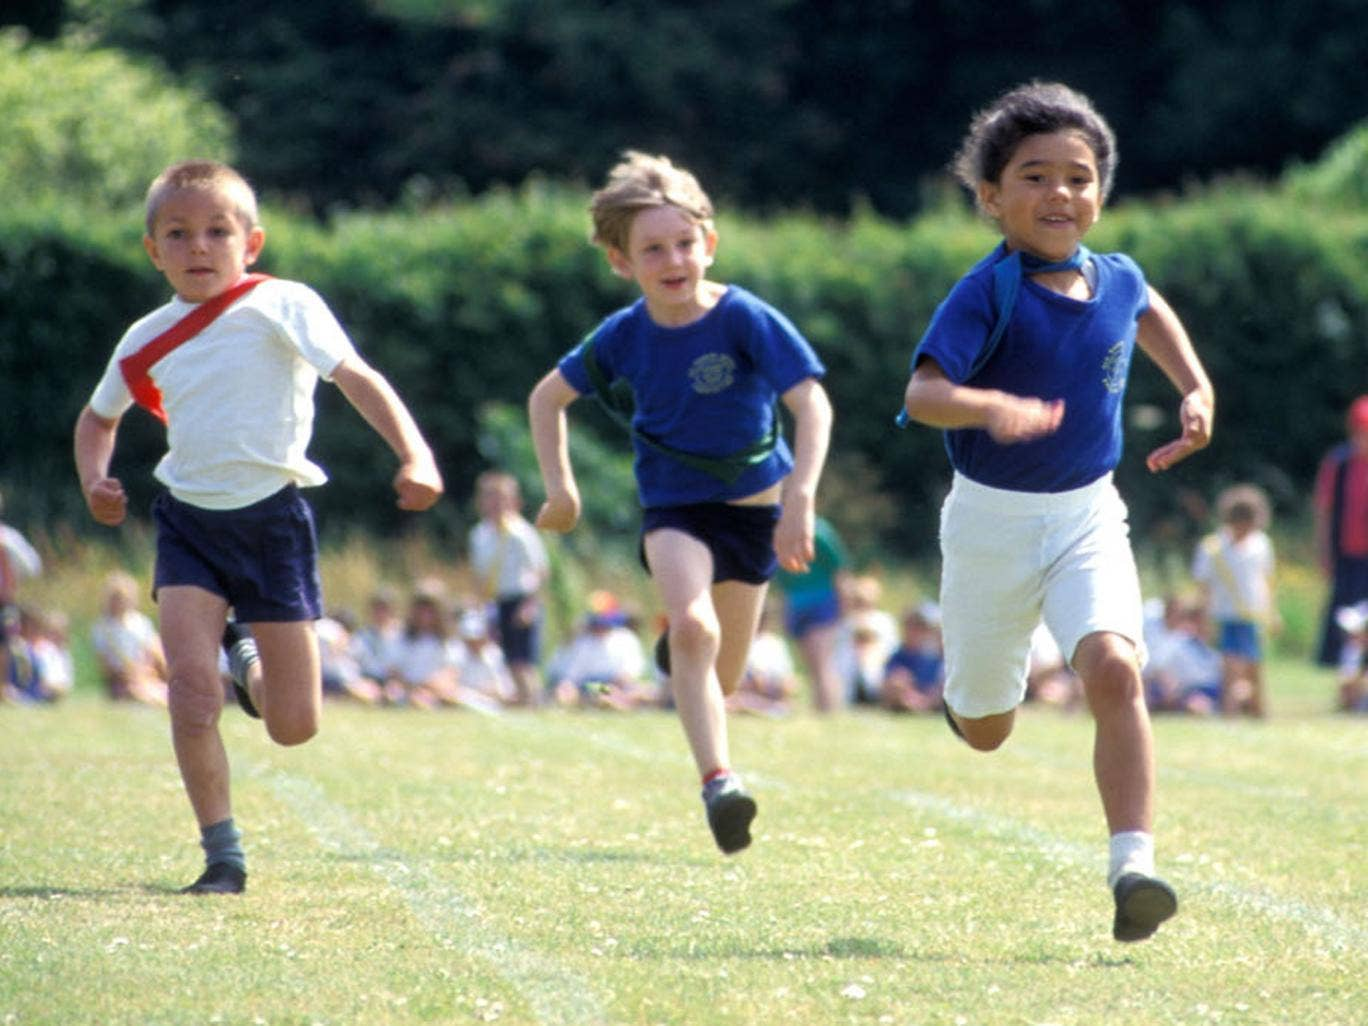 Ofsted say children are being let down in PE lessons